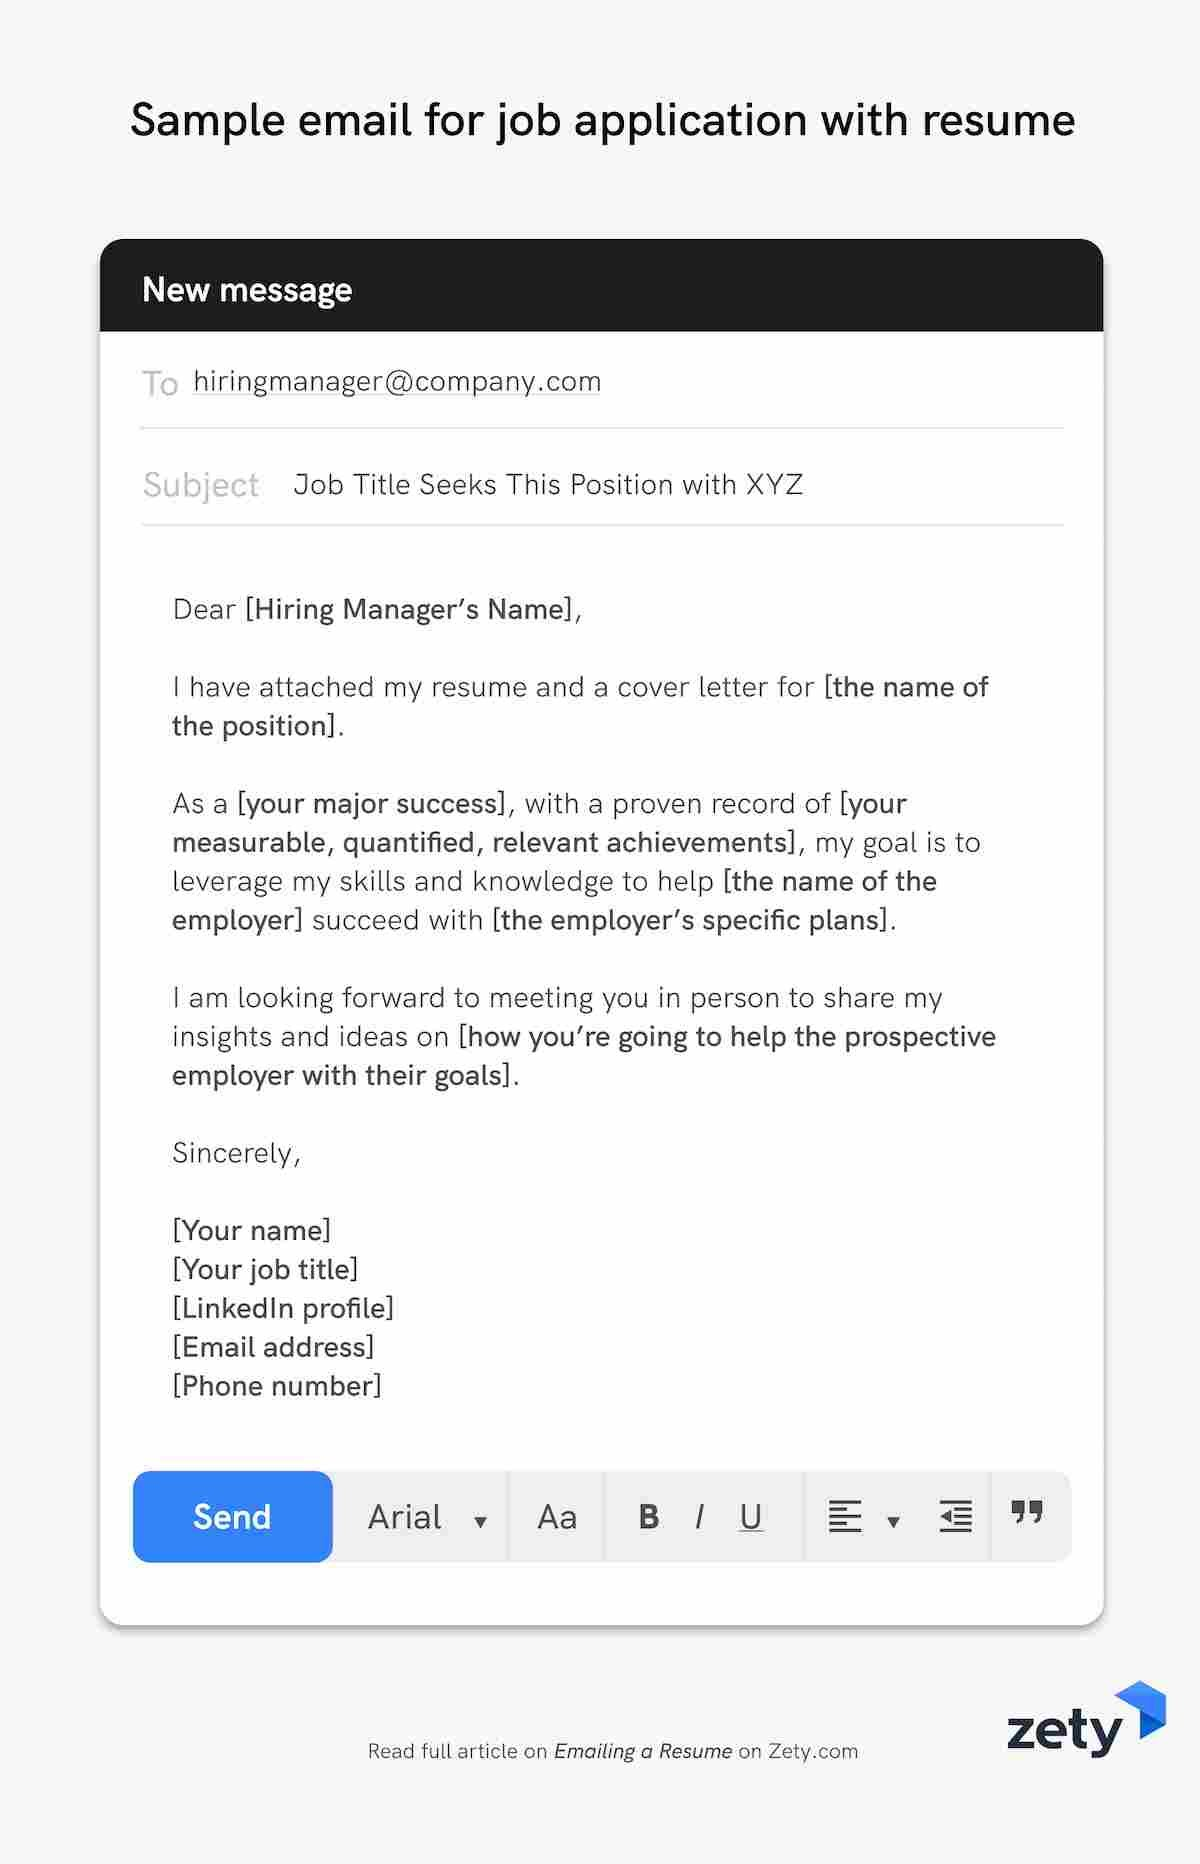 emailing resume job application email samples subject line for sample with good looking Resume Subject Line For Resume Email